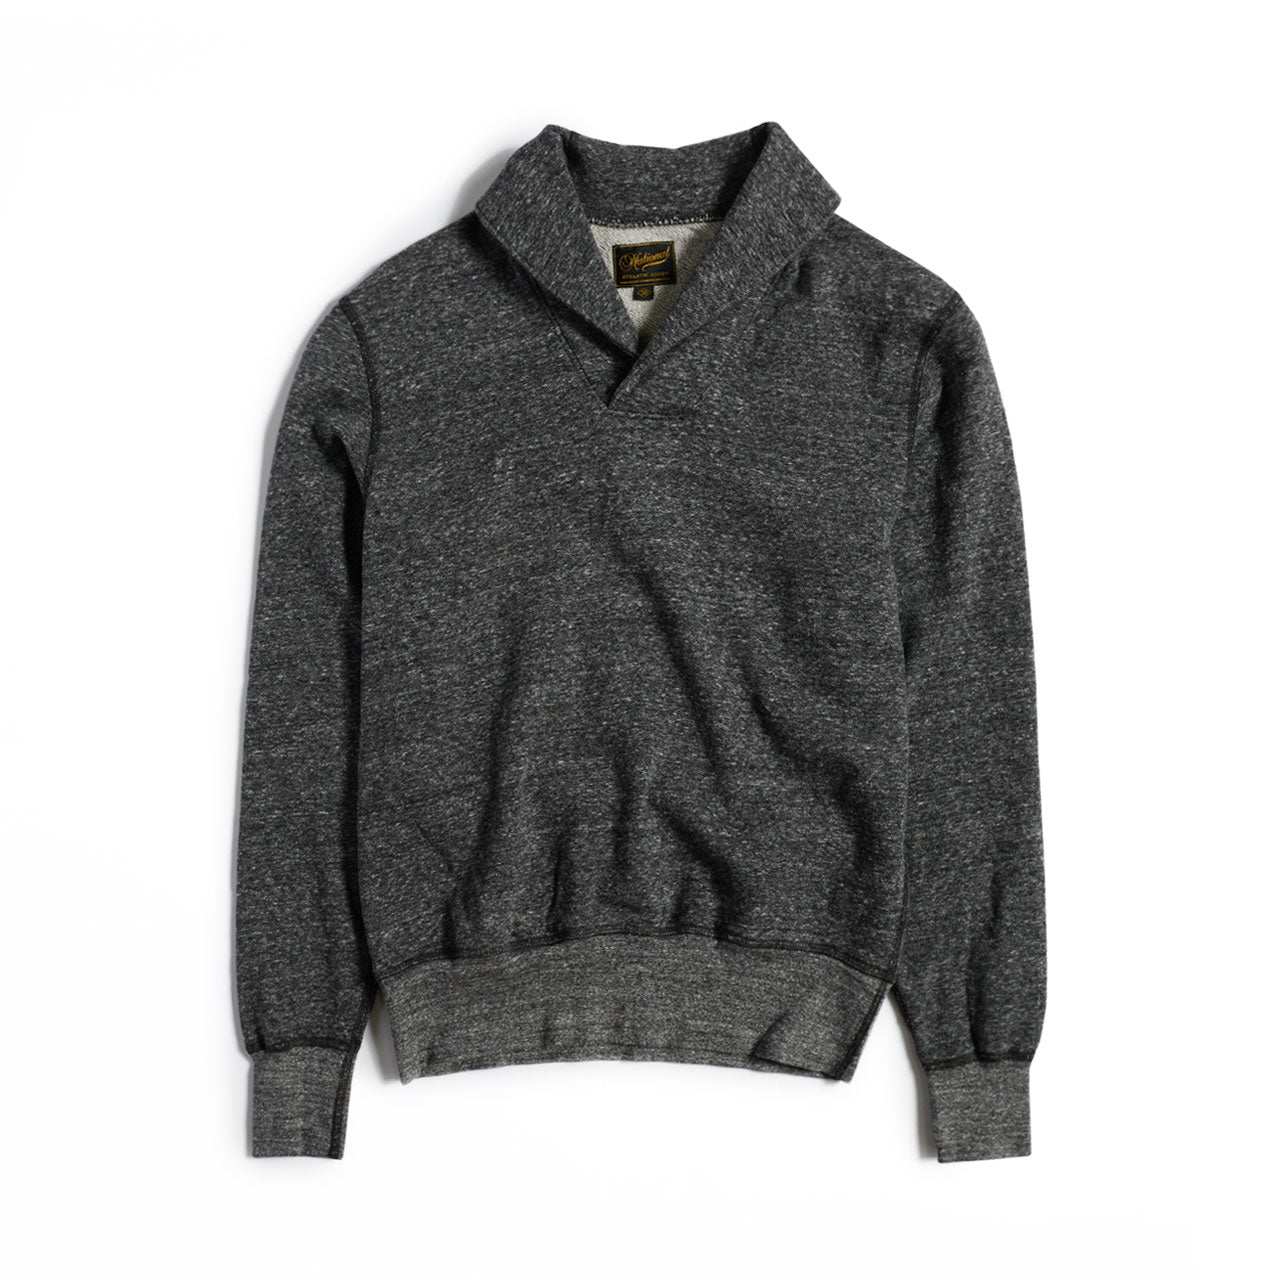 National Athletic Goods Shawl Pullover